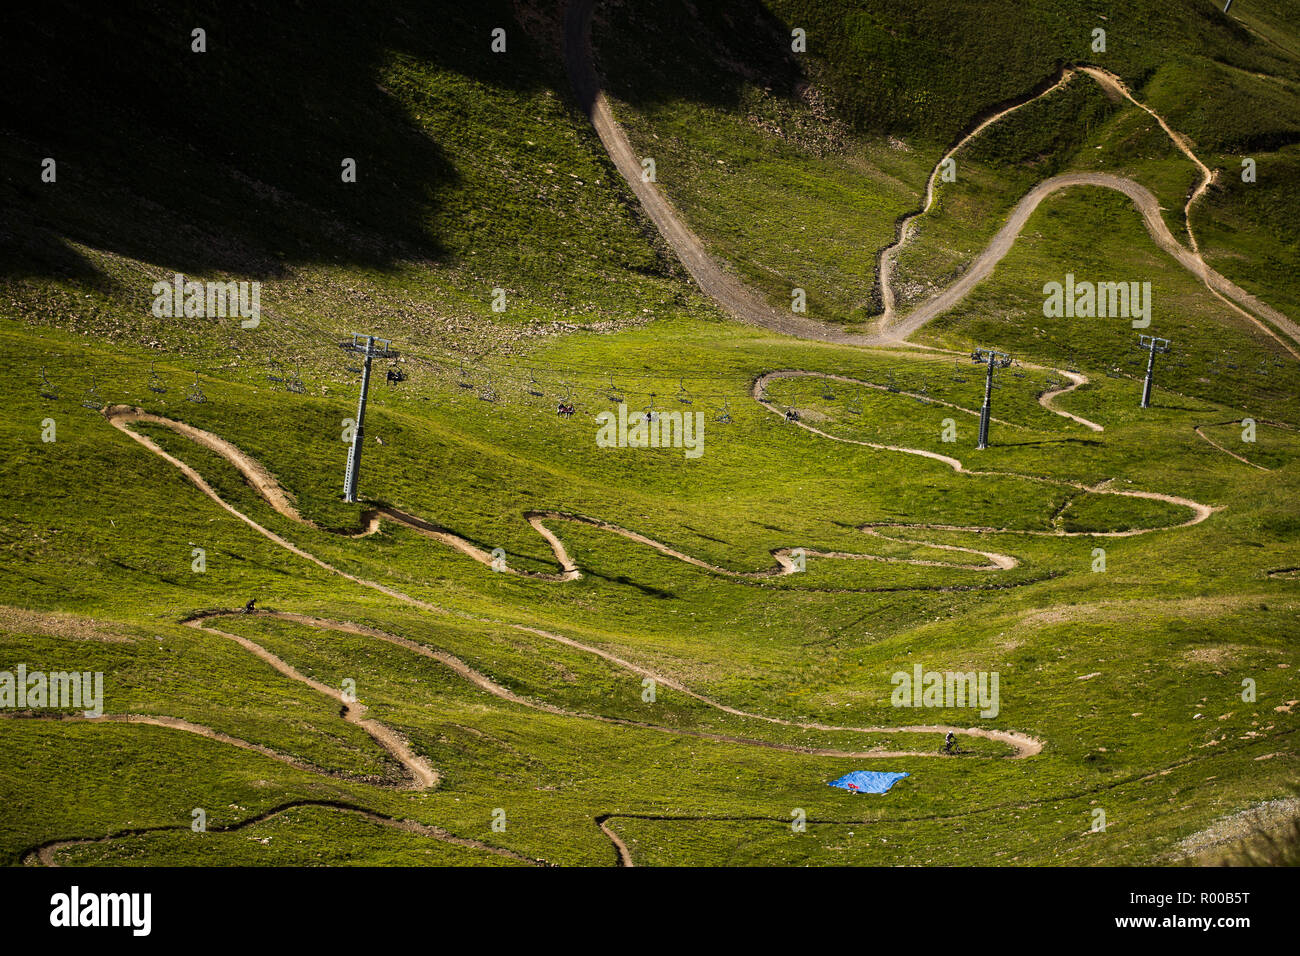 Mountain Bikers on a singletrack with many hairpin bends - Stock Image